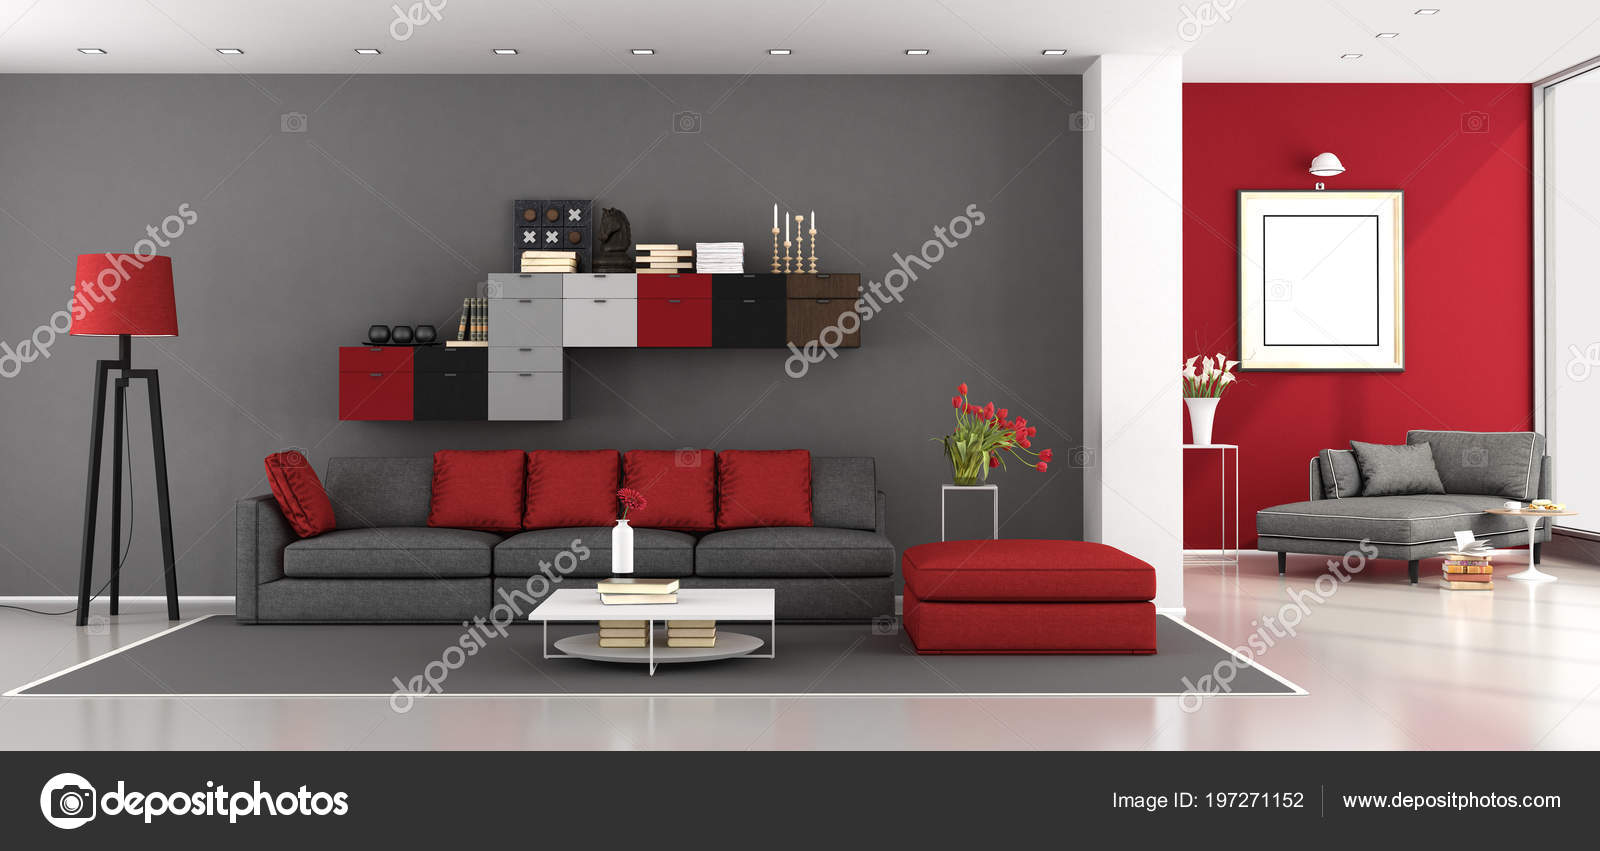 Grey And Red Living Room Ideas Red Gray Modern Living Room Sofa Chaise Lounge Background Rendering Stock Photo C Archideaphoto 197271152